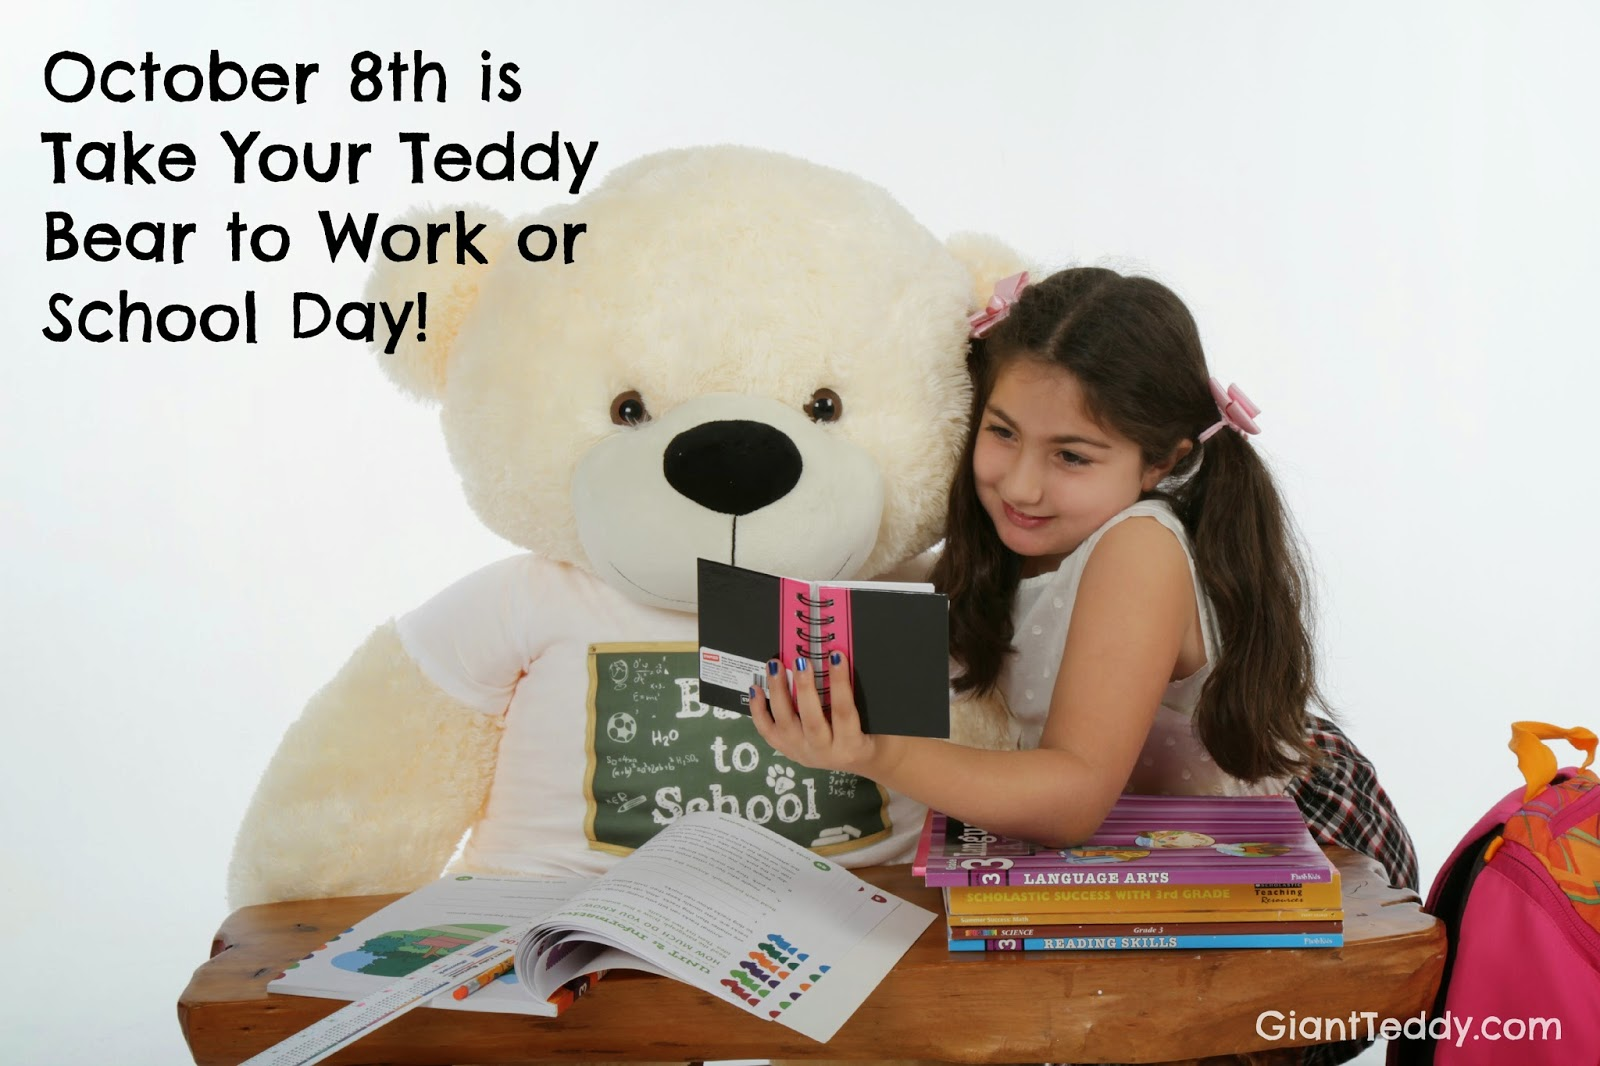 Take your teddy bear to work or school